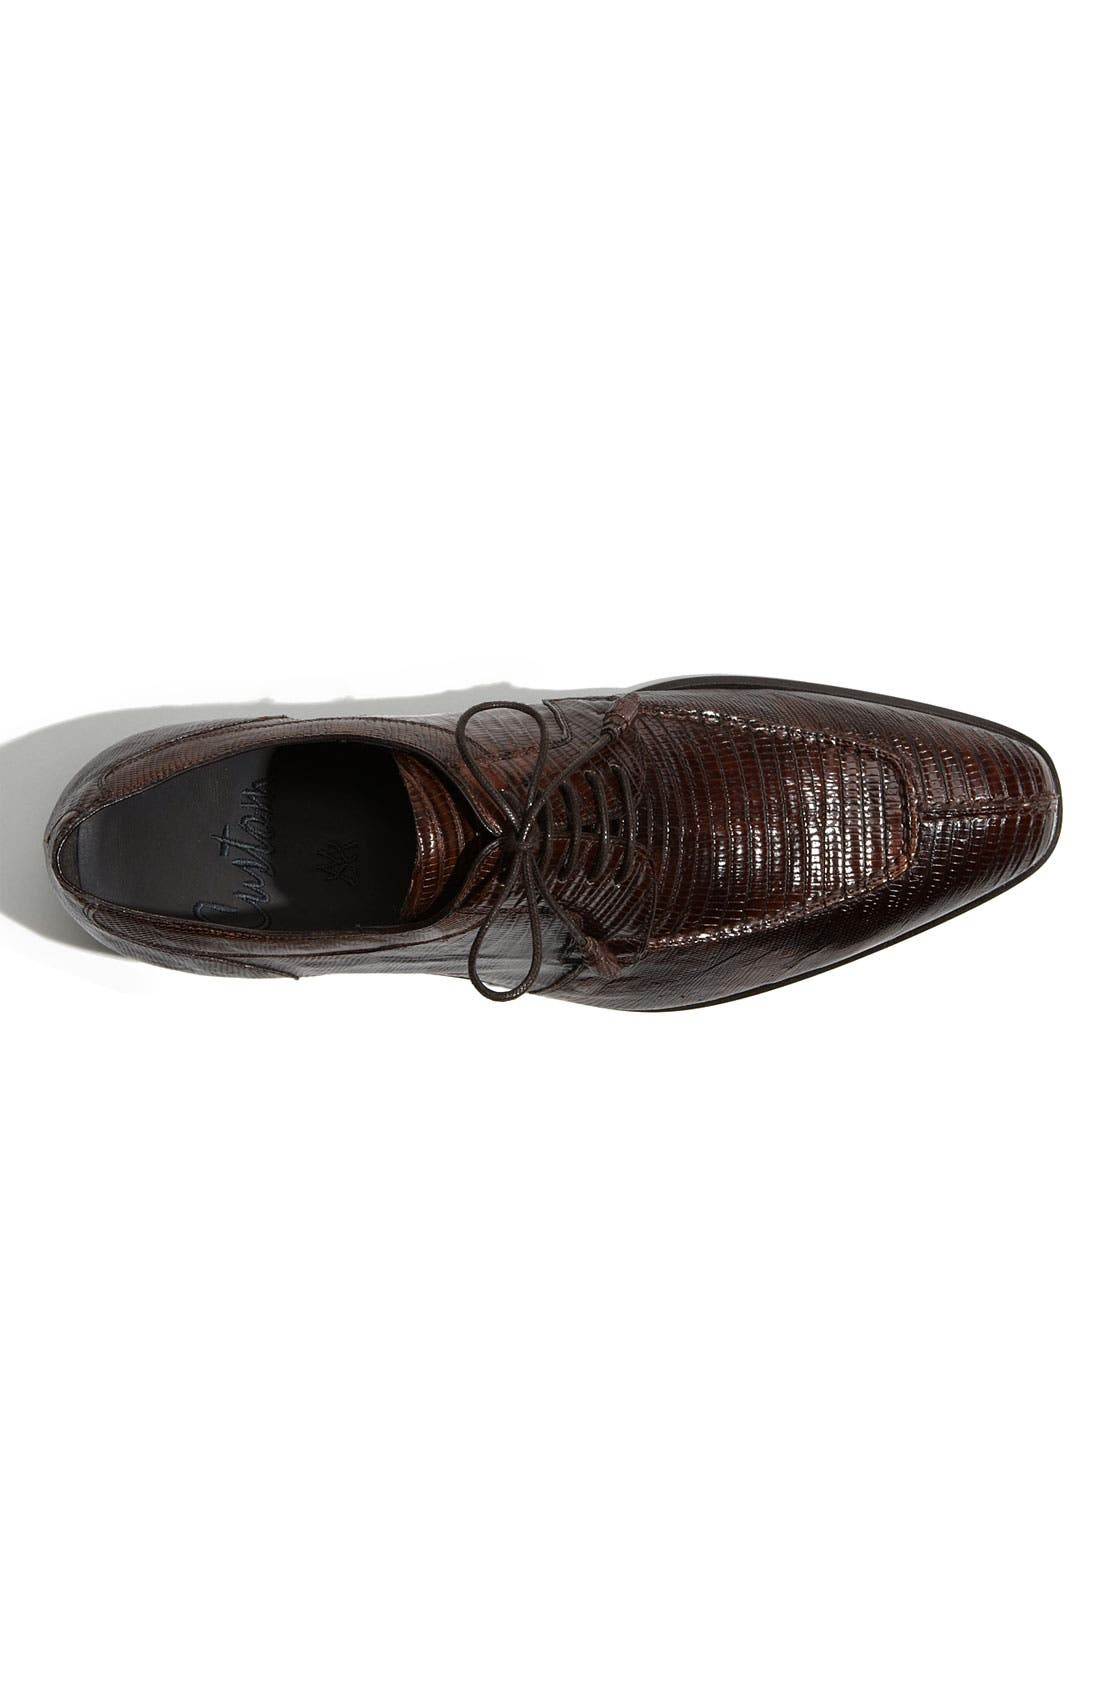 Alternate Image 2  - Mezlan 'Barolo' Apron Toe Oxford